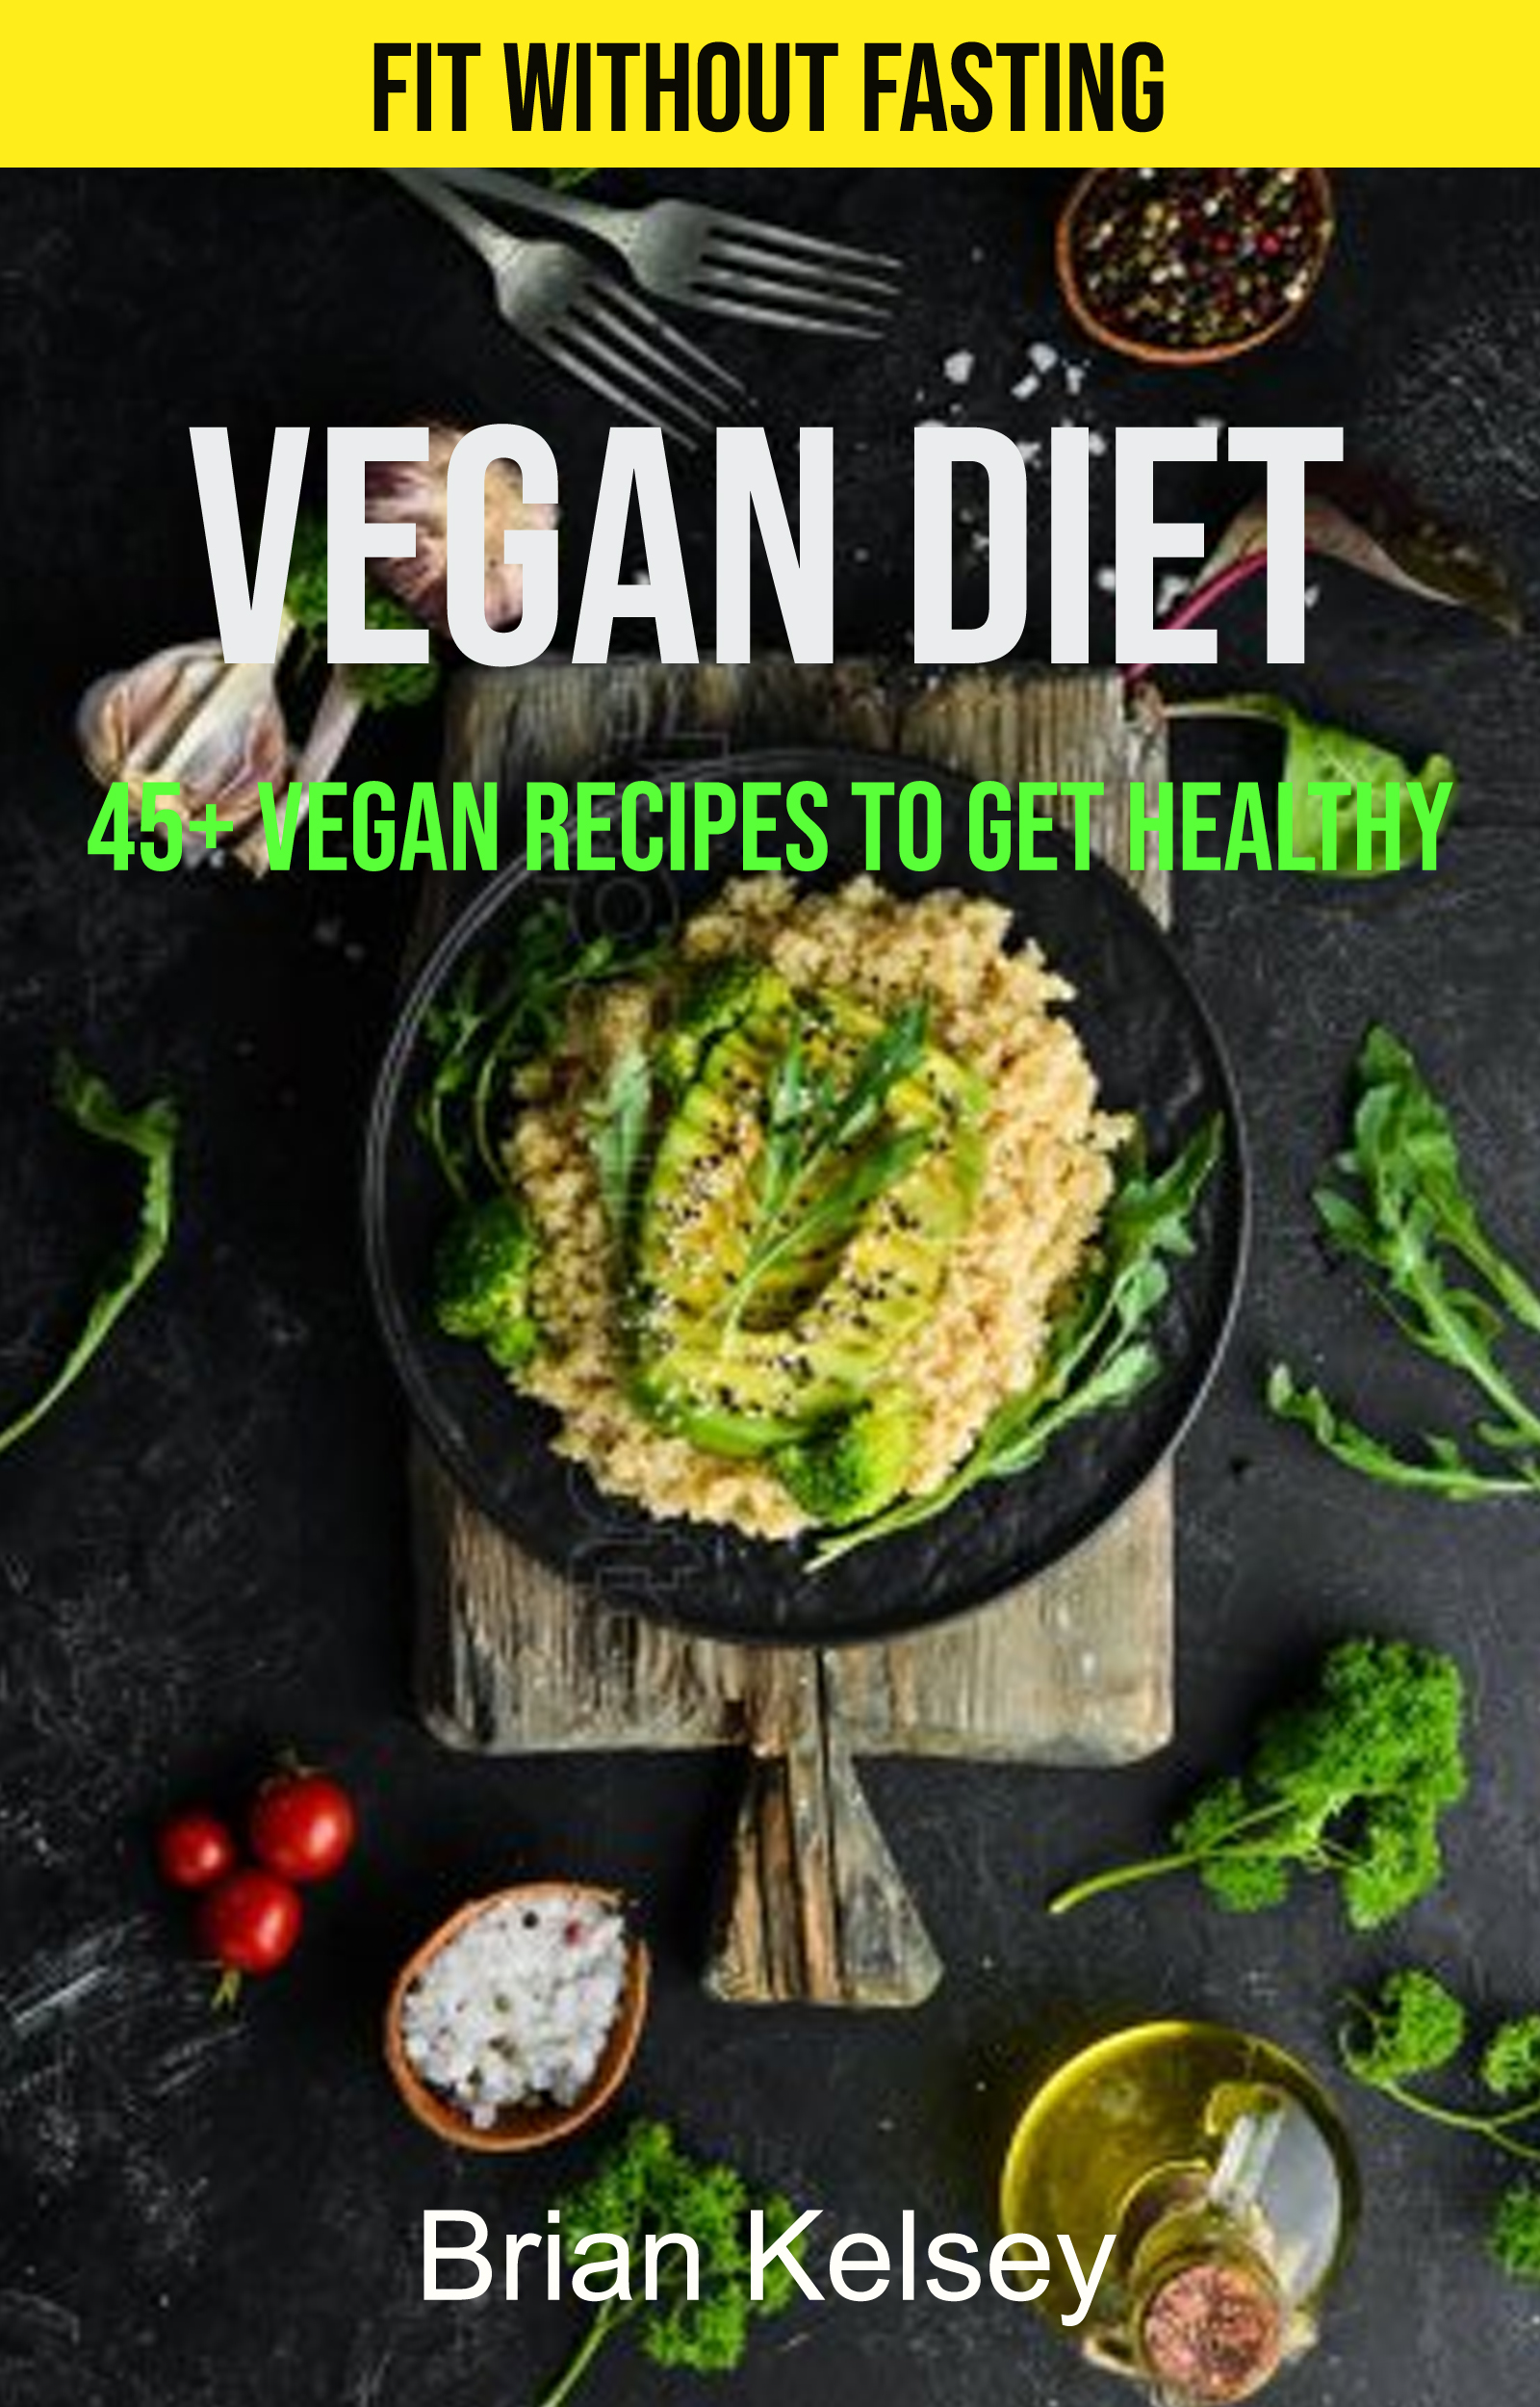 Vegan diet: 45+ vegan recipes to get healthy (fit without fasting)